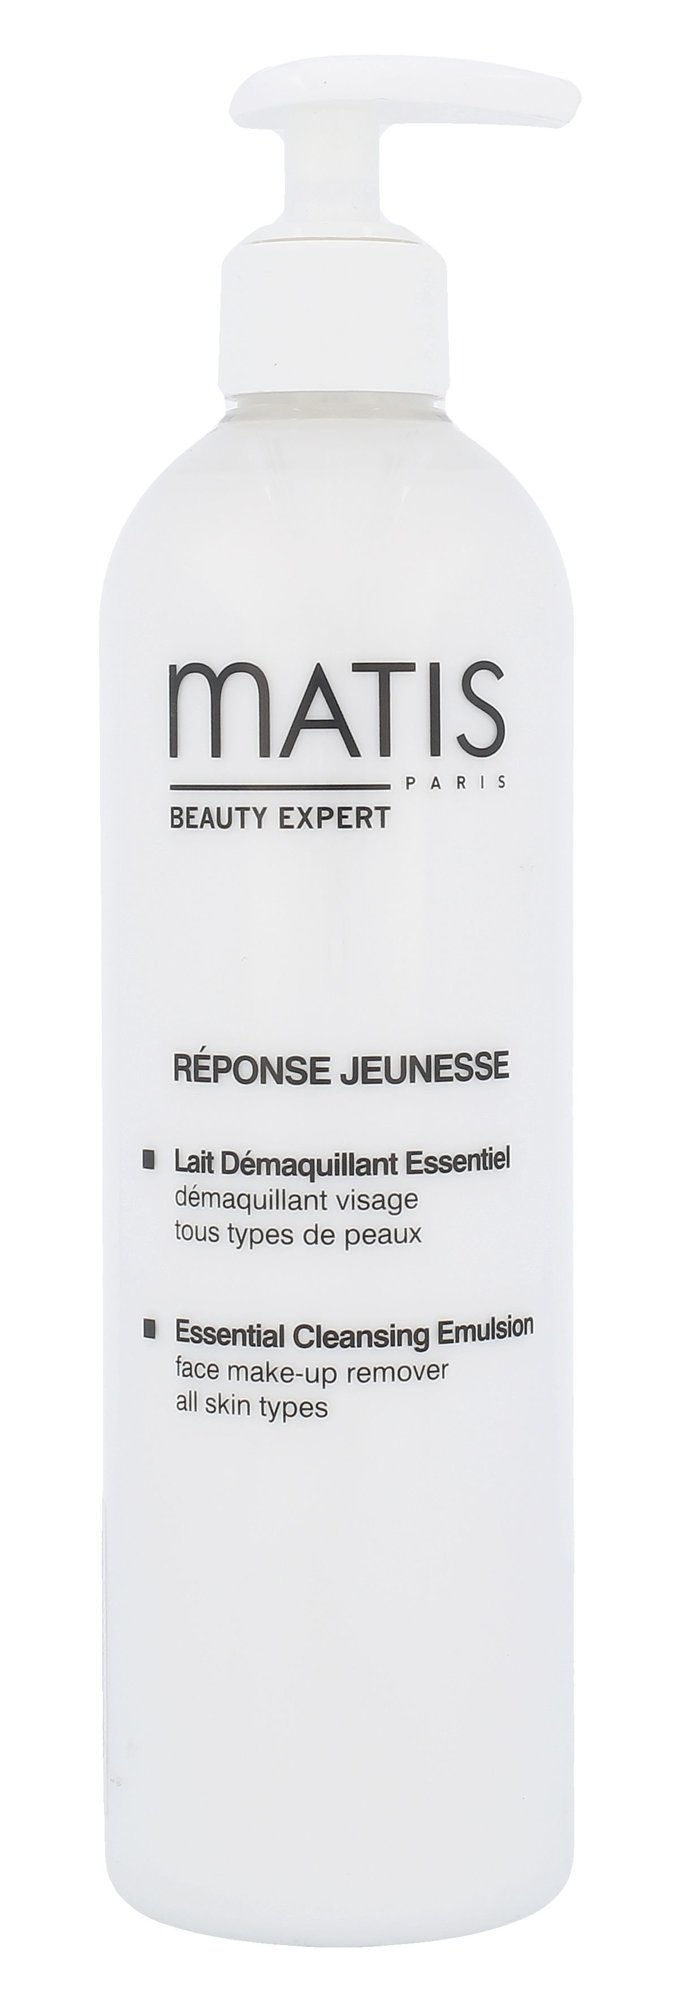 Matis Réponse Jeunesse Cosmetic 400ml  Essential Cleansing Emulsion